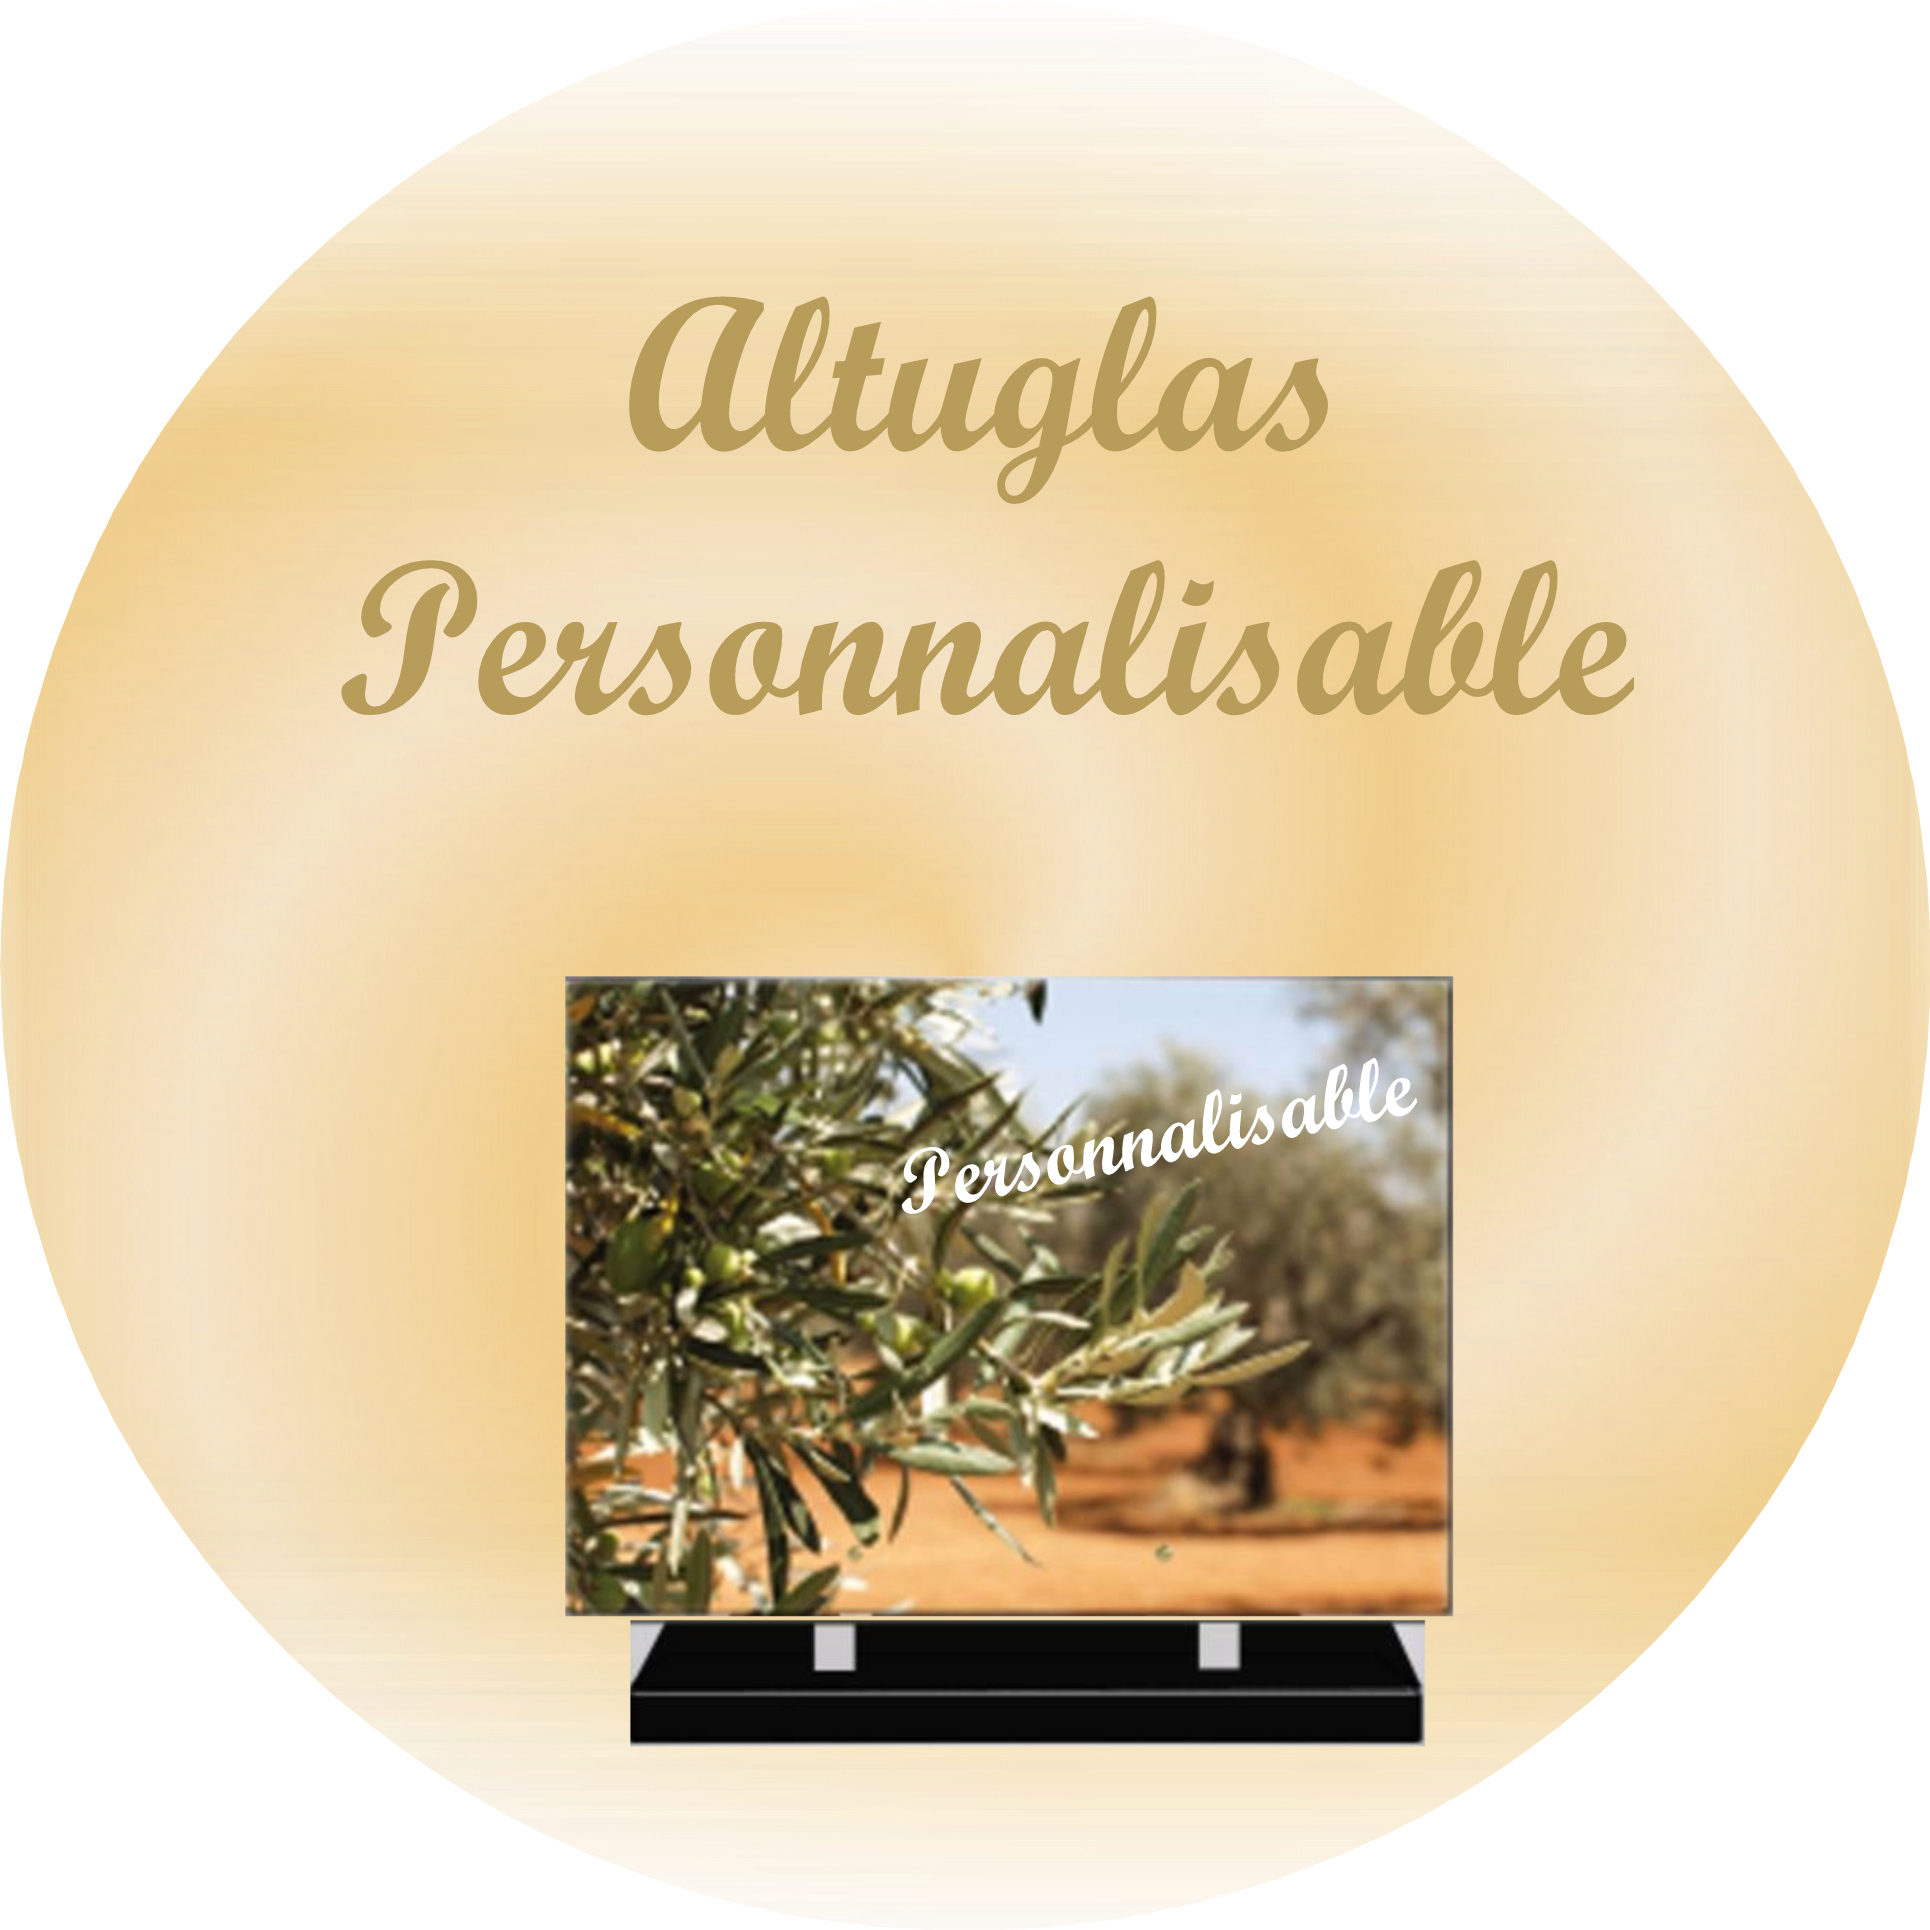 PLAQUES FUNERAIRES MODERNES PERSONNALISABLES RECTANGLE ALQUINES